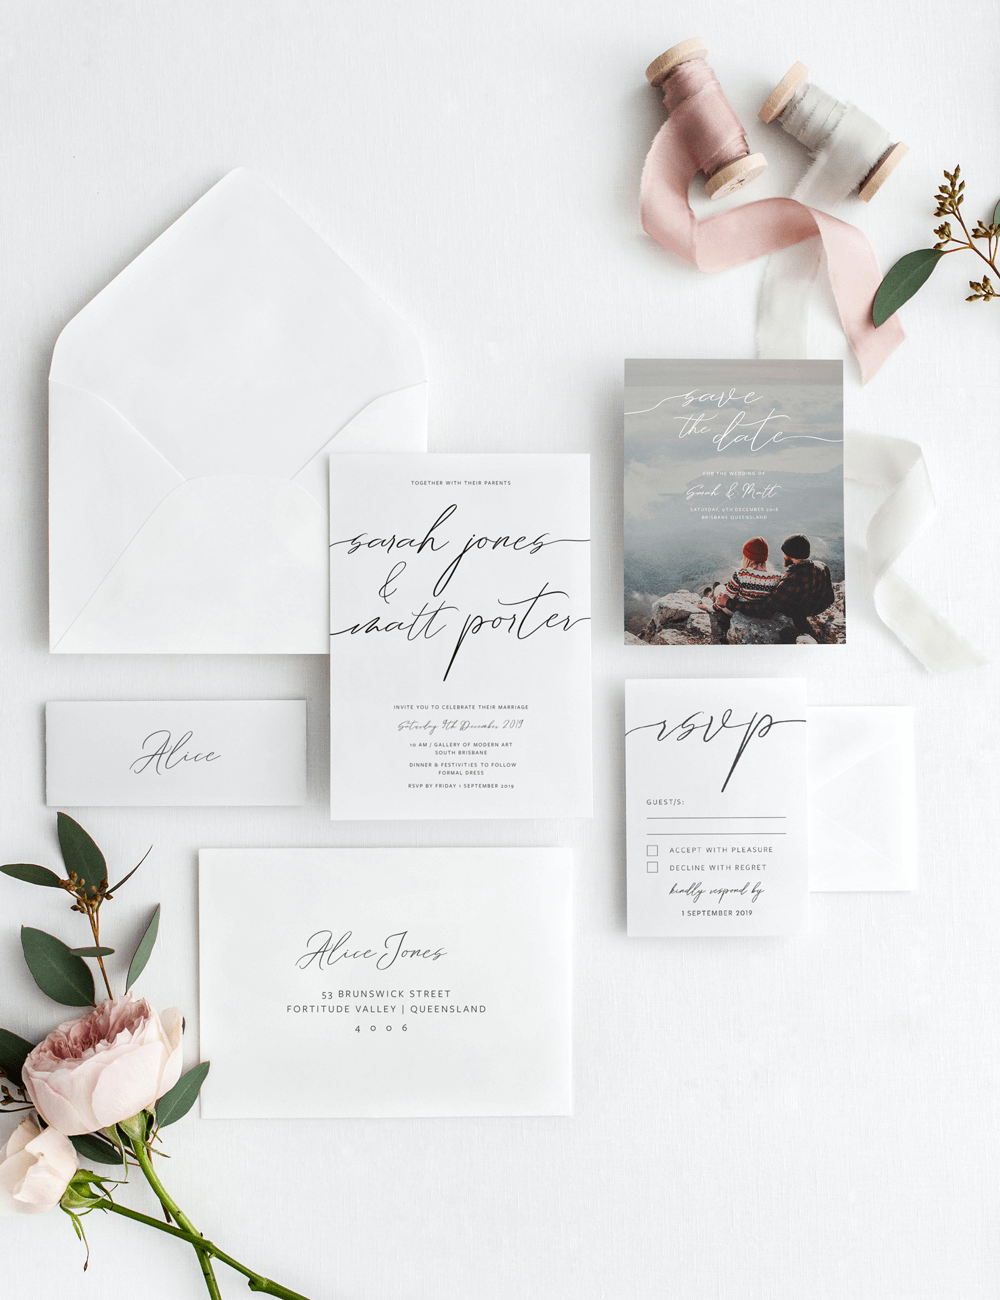 Wedding Invitation Set - Formal invite, RSVP, Save the Date, Envelope